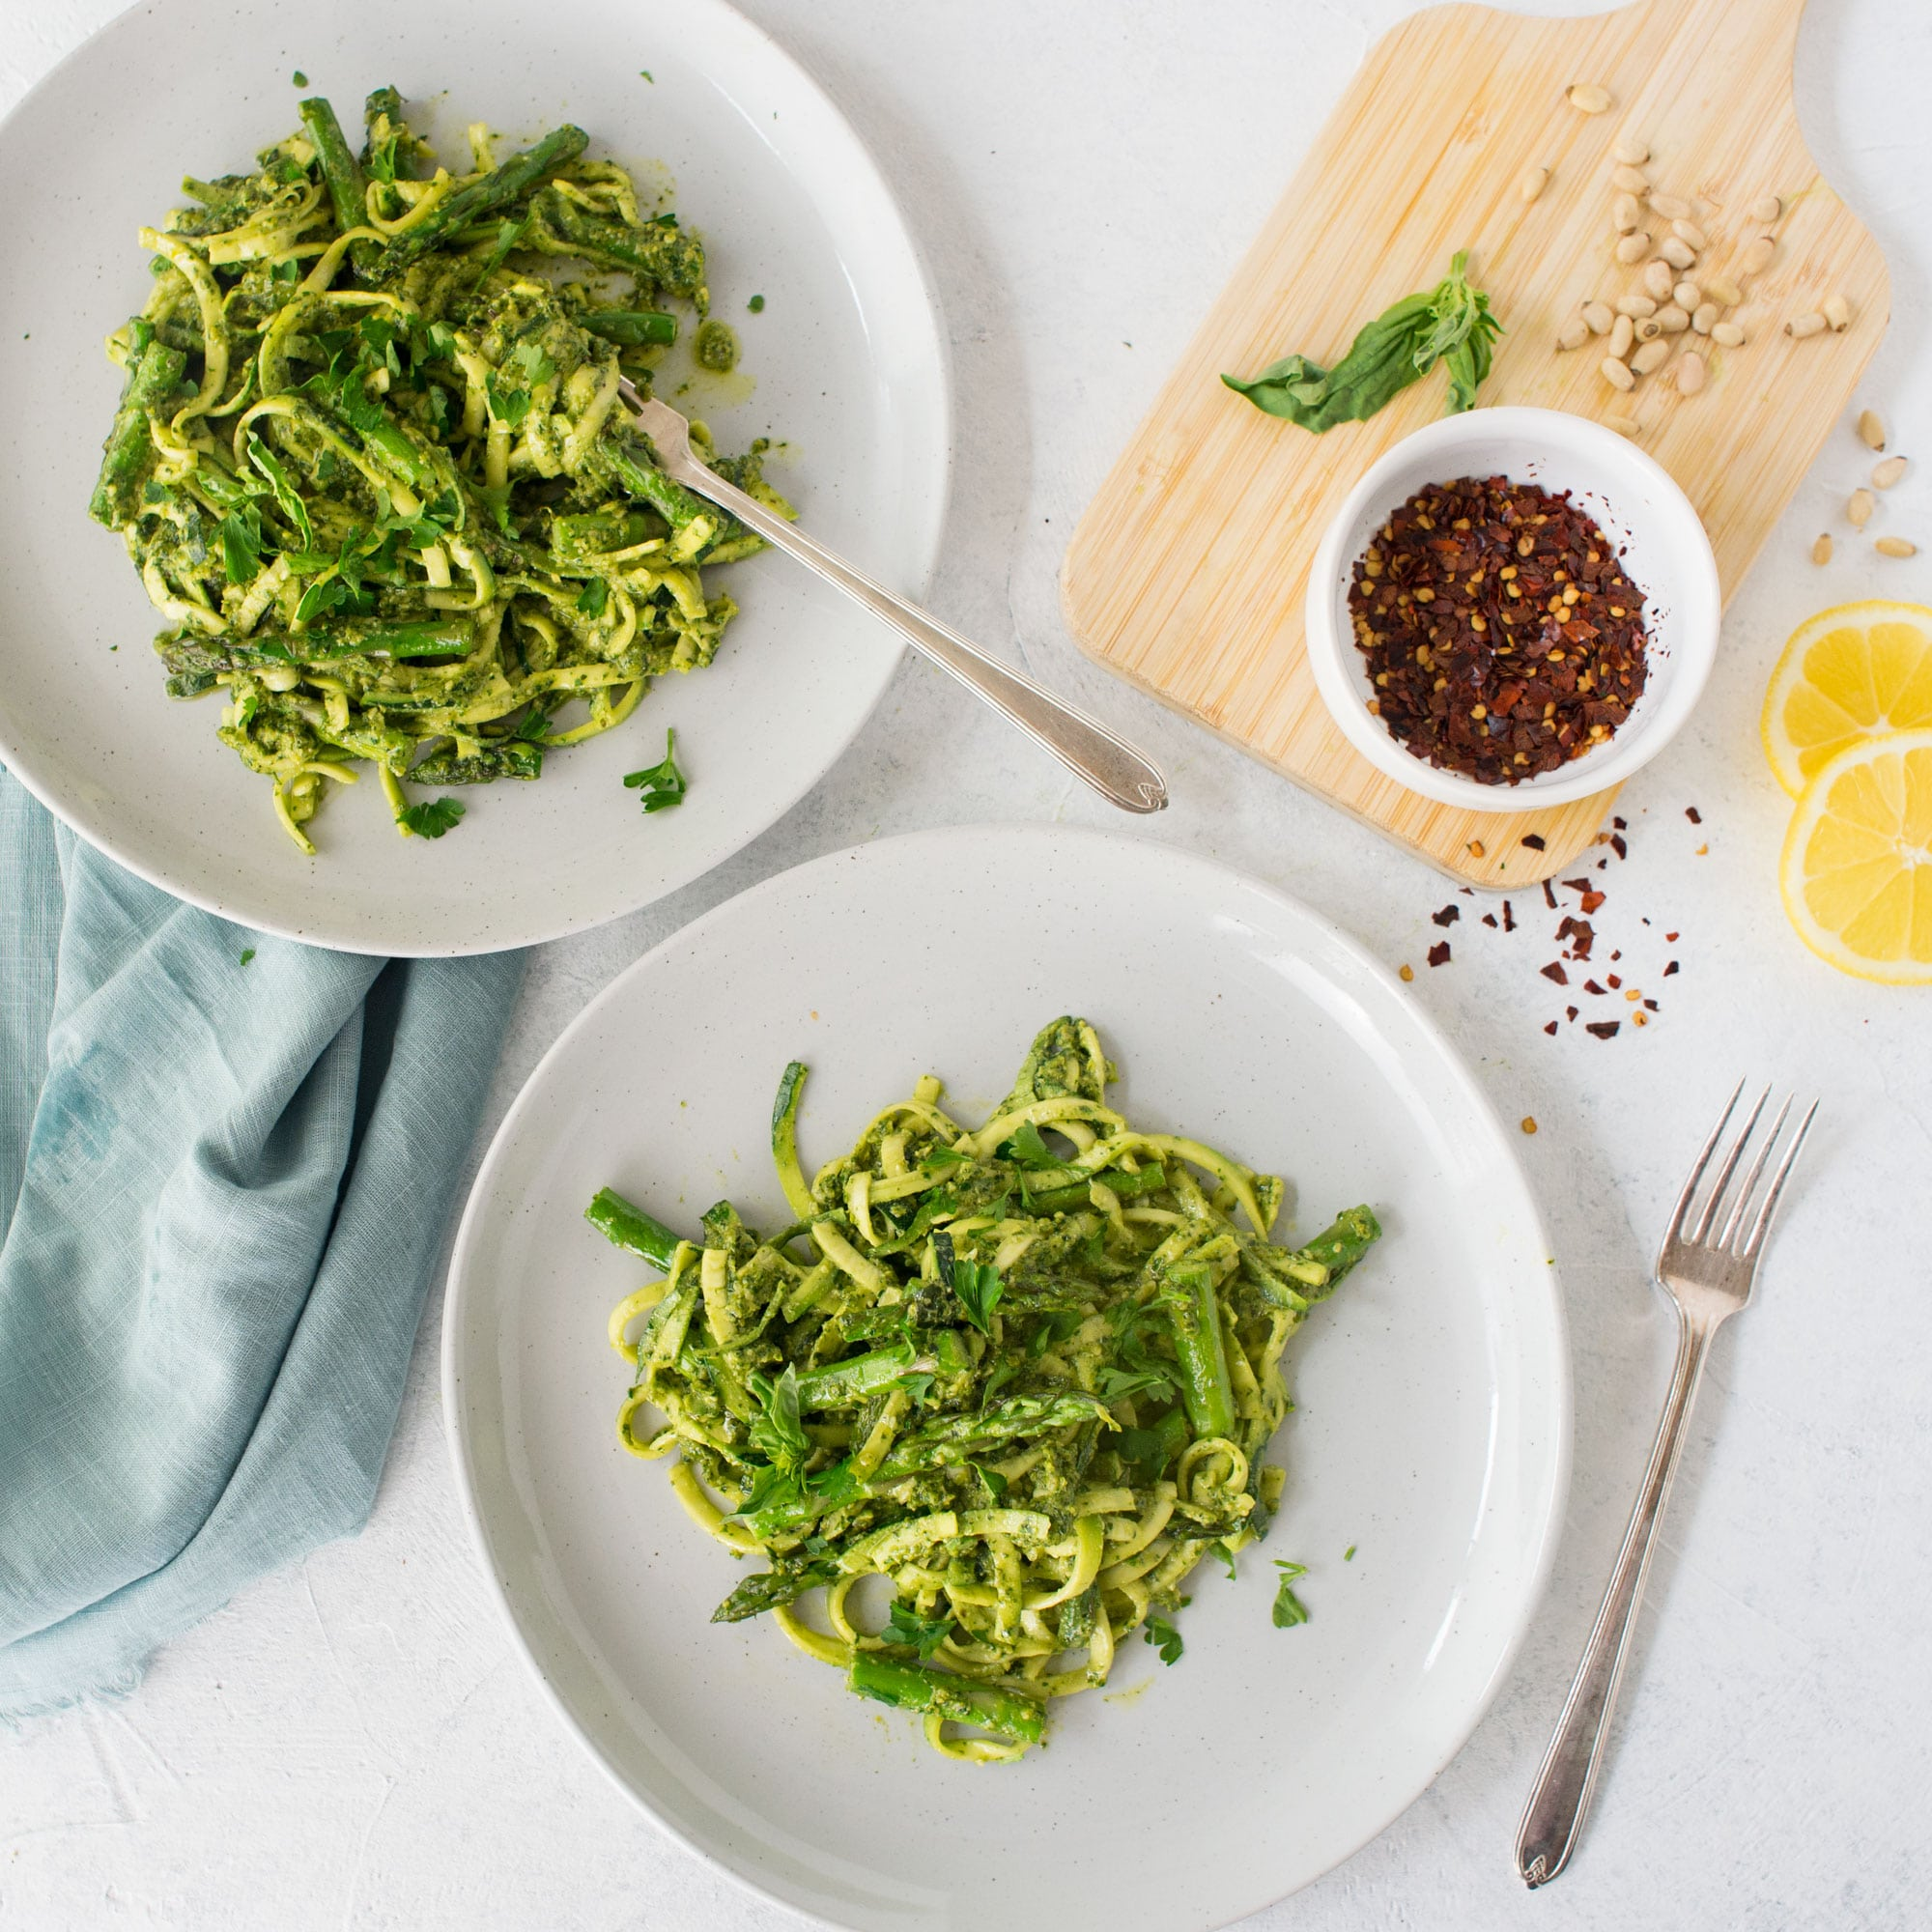 two plates of zoodles with asparagus and lemon pesto with red chili flakes, basil, and pine nuts